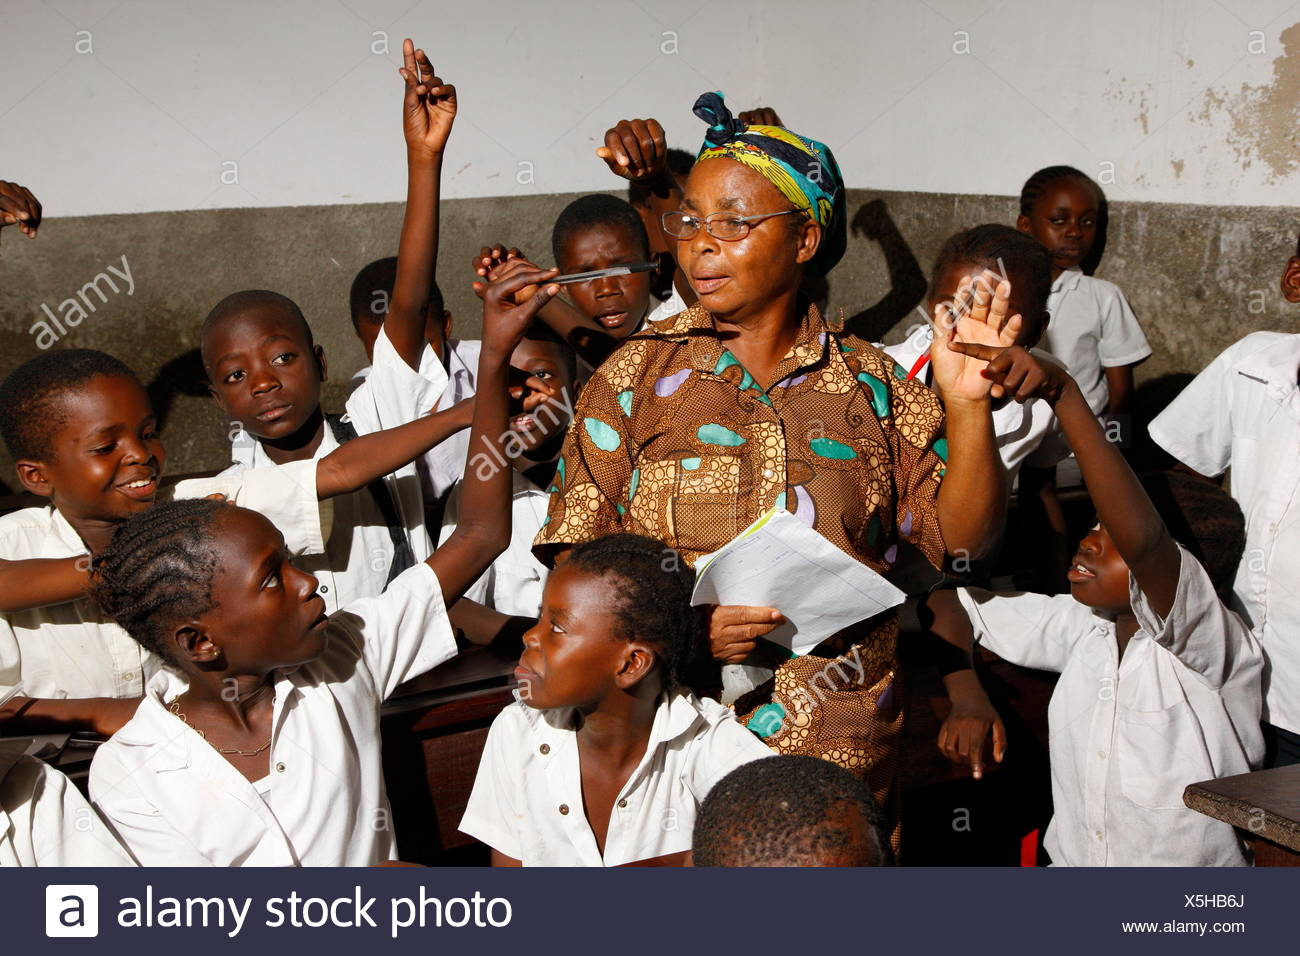 Teacher and school children in school uniform during class, Kinshasa, Congo - Stock Image